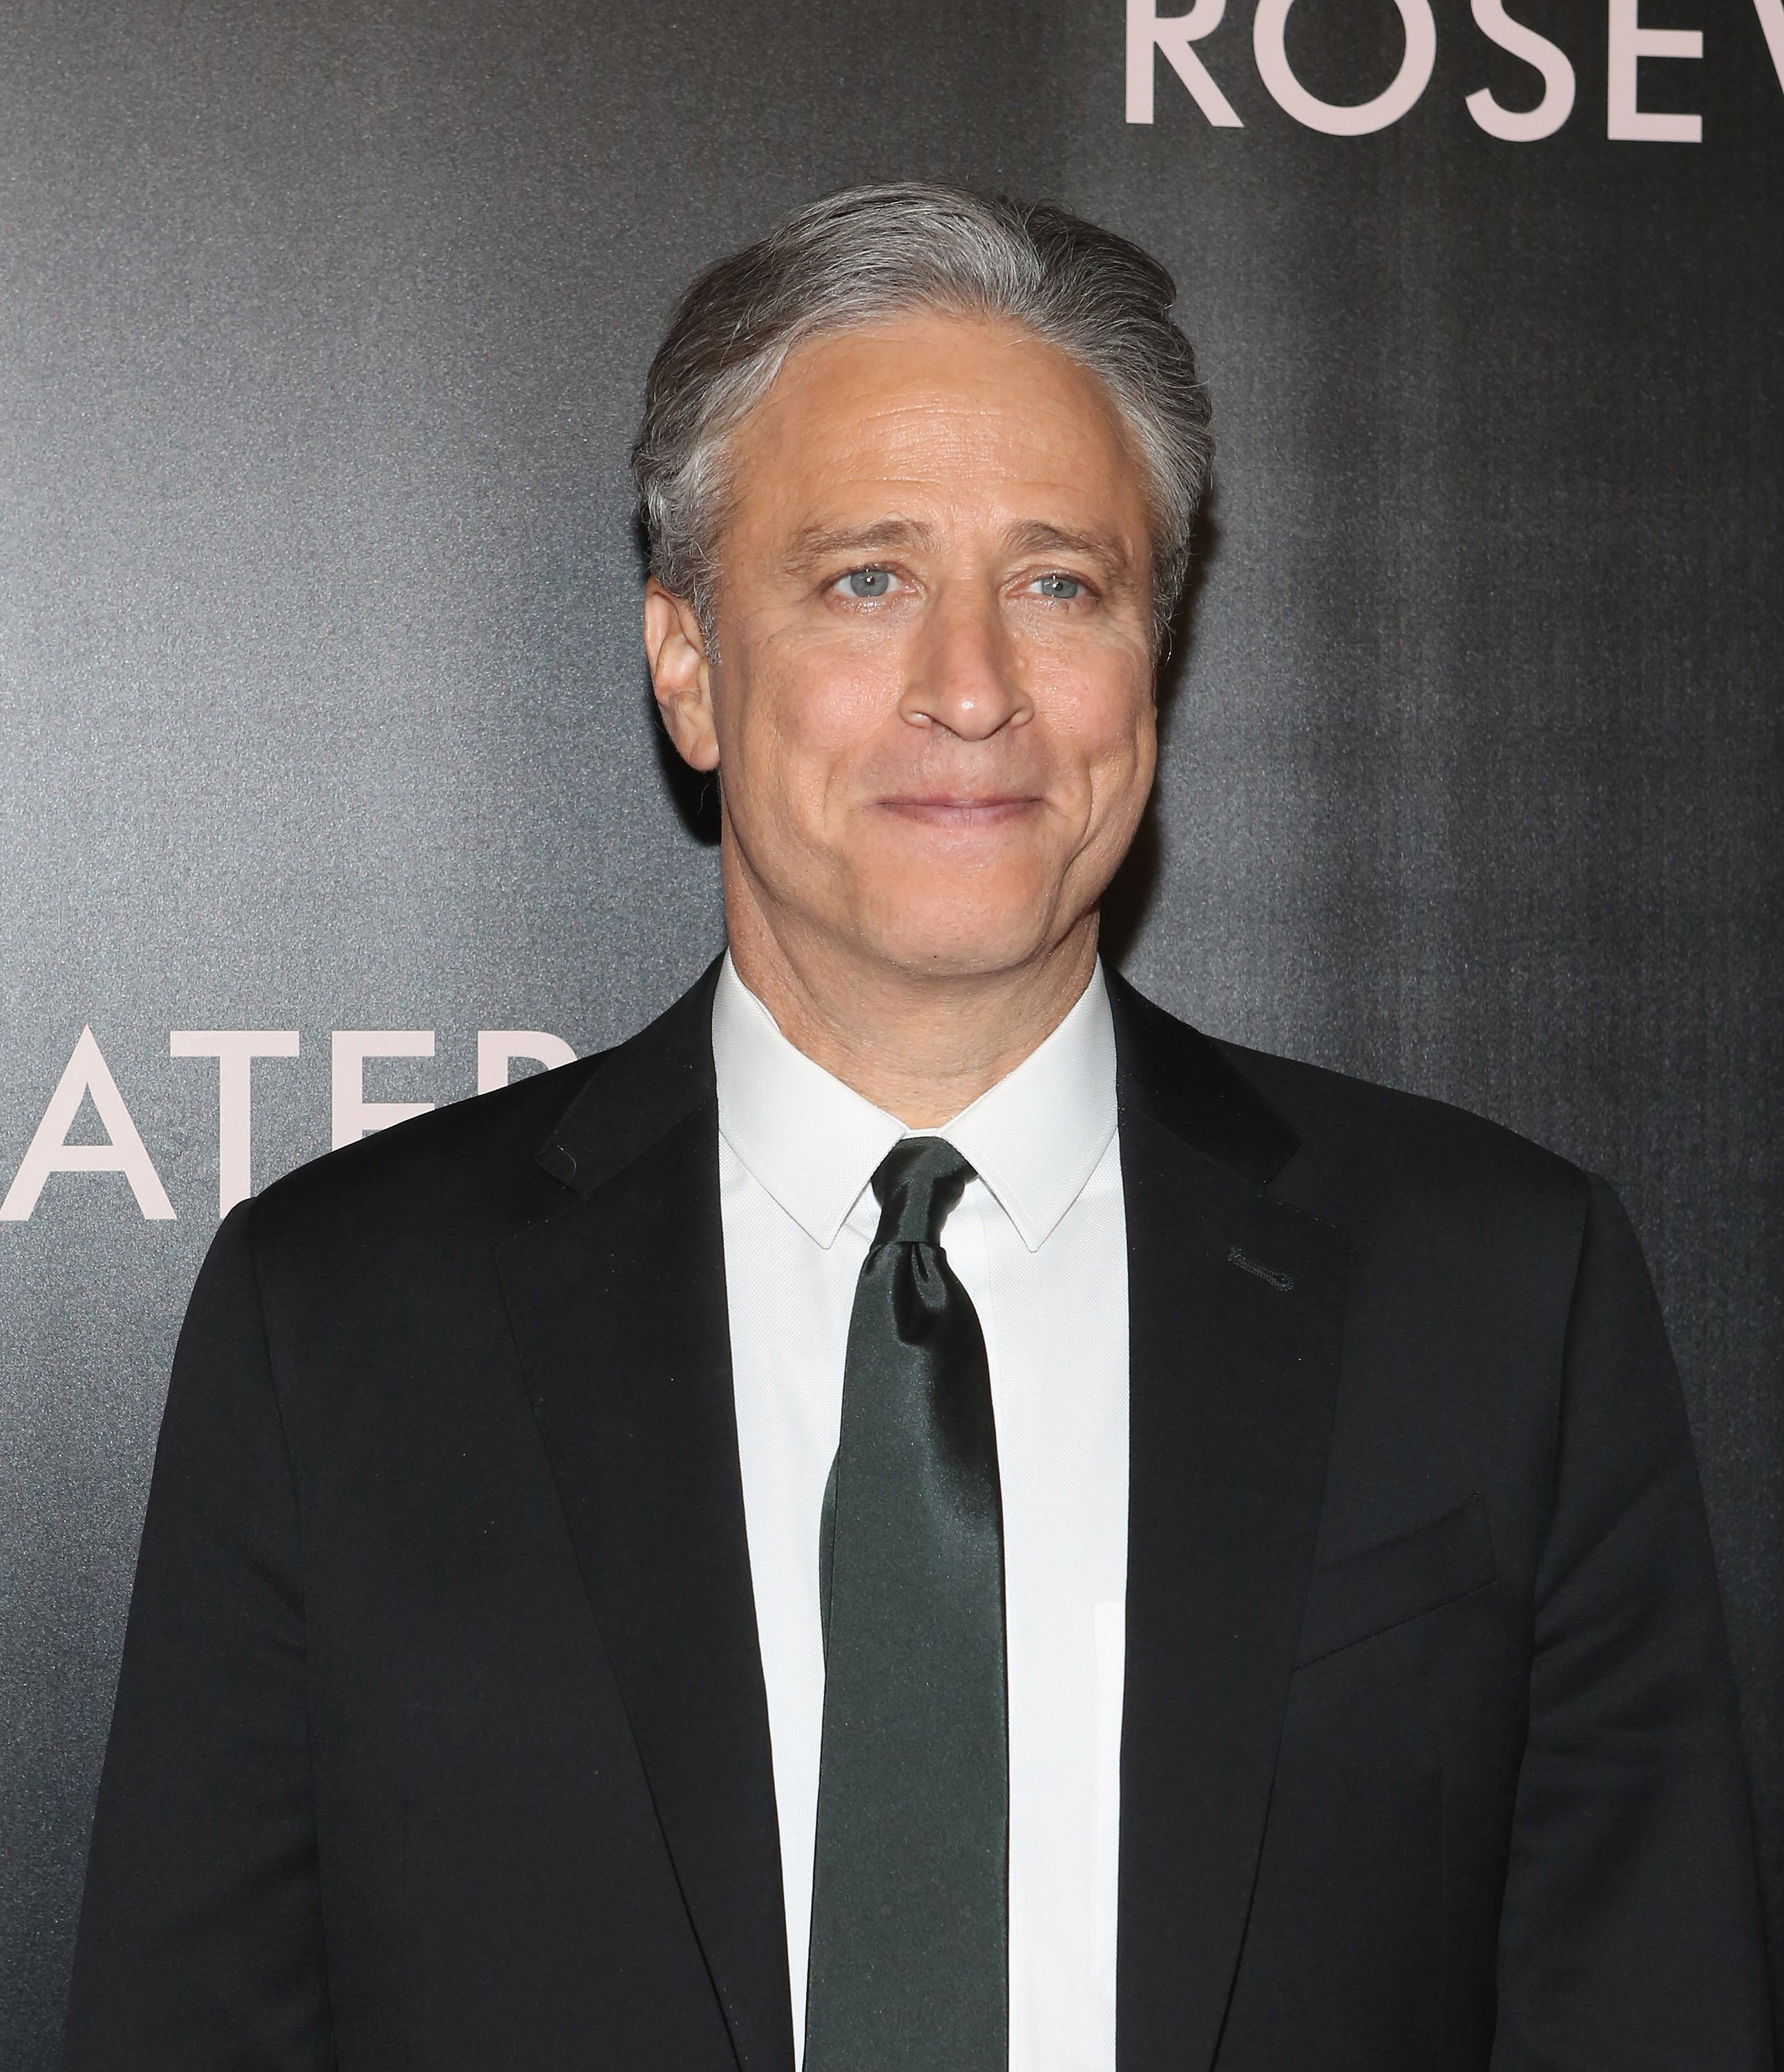 Jon Stewart attends 'Rosewater' New York Premiere at AMC Lincoln Square Theater on November 12, 2014 in New York City